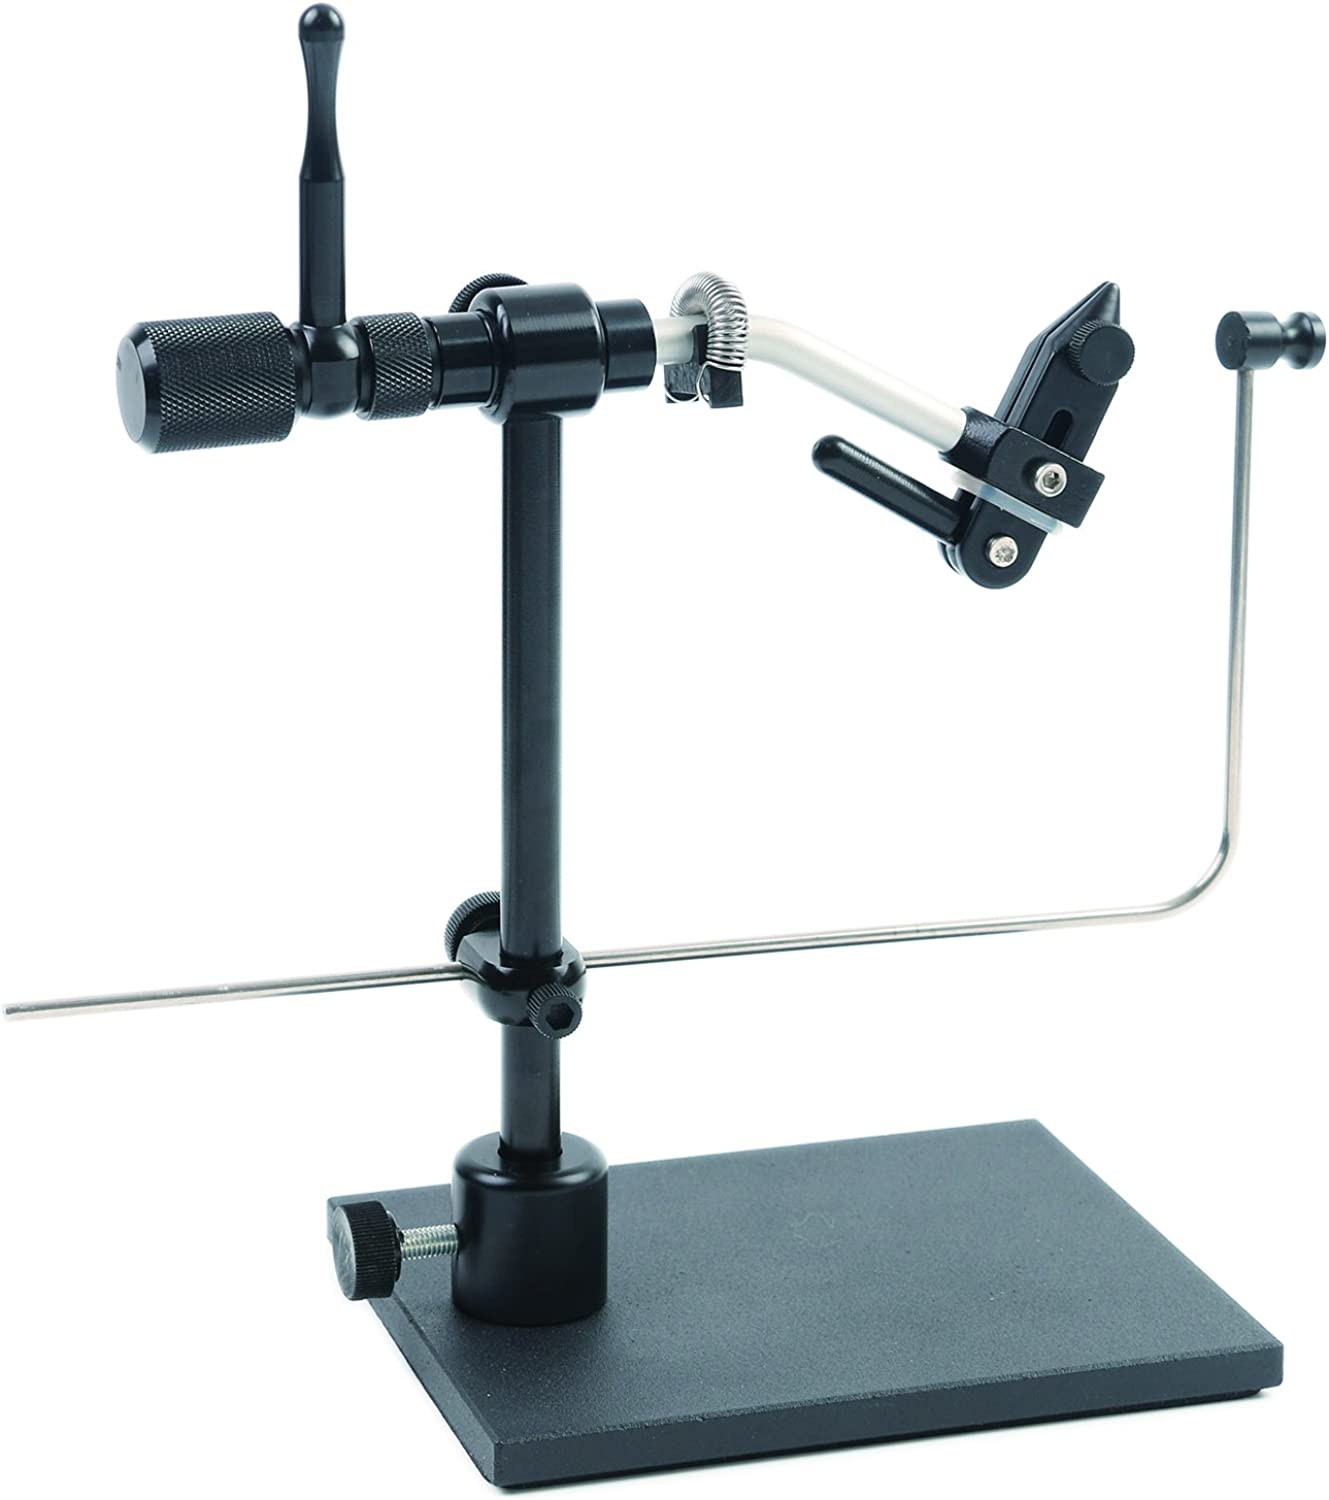 M MAXIMUMCATCH Maxcatch redary Fly Tying Vise Alloy Travel Vise with Base